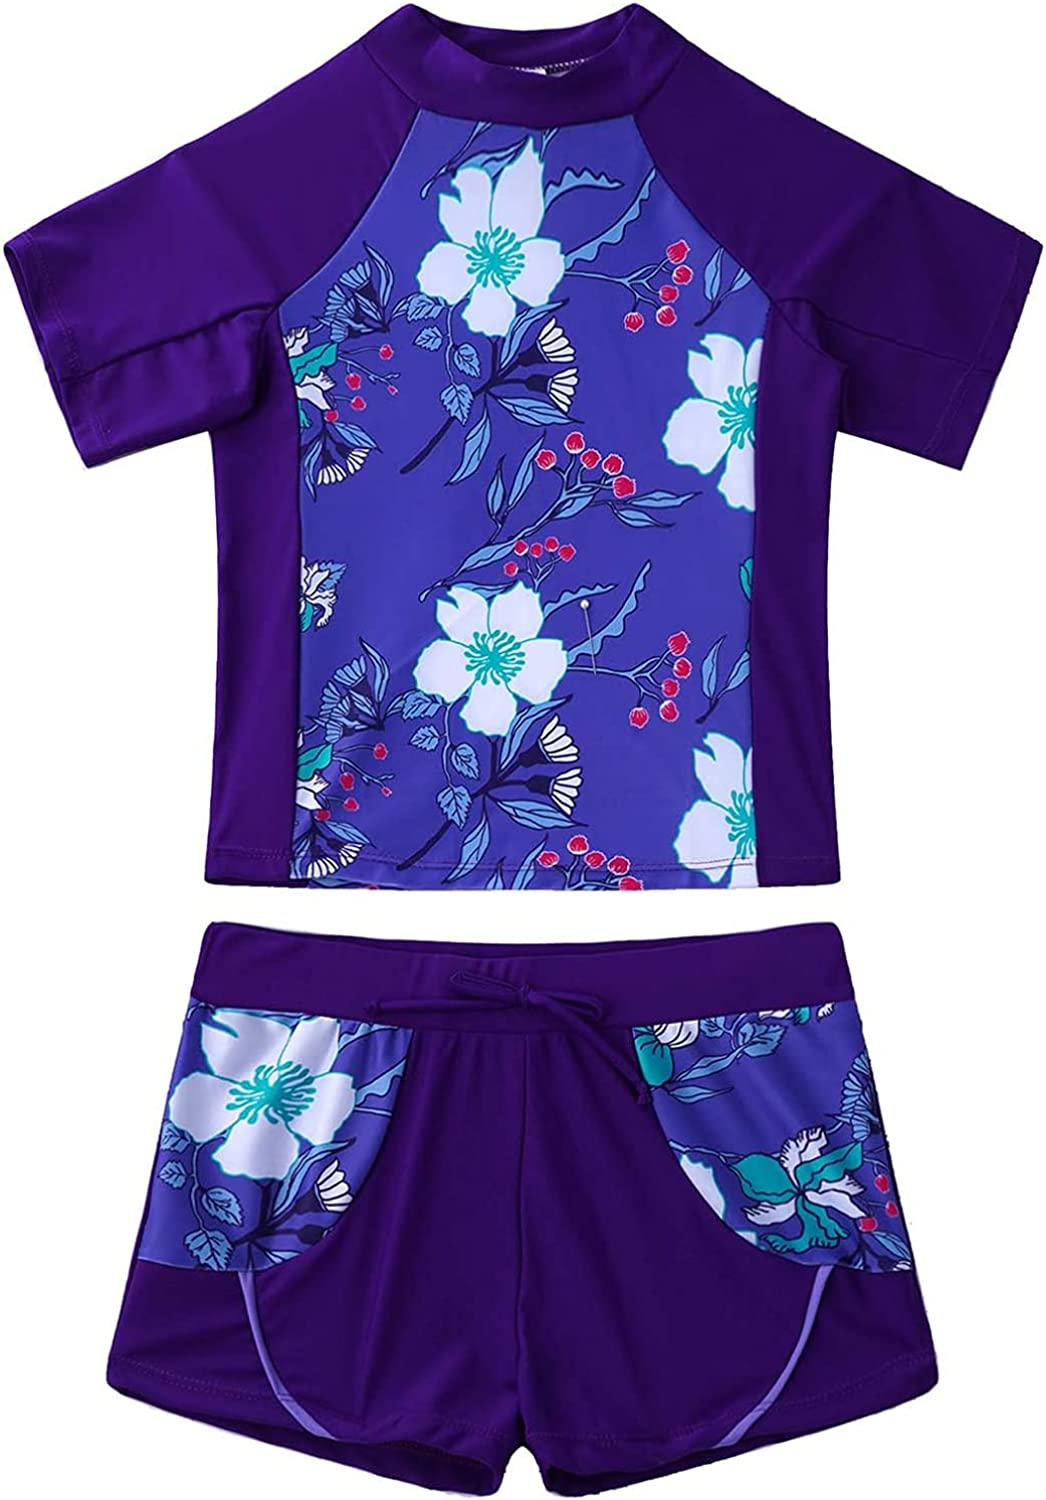 MSemis Kids Girls Floral 2 Pieces Sets Sleeve Rash Short Guard T Sale special Industry No. 1 price